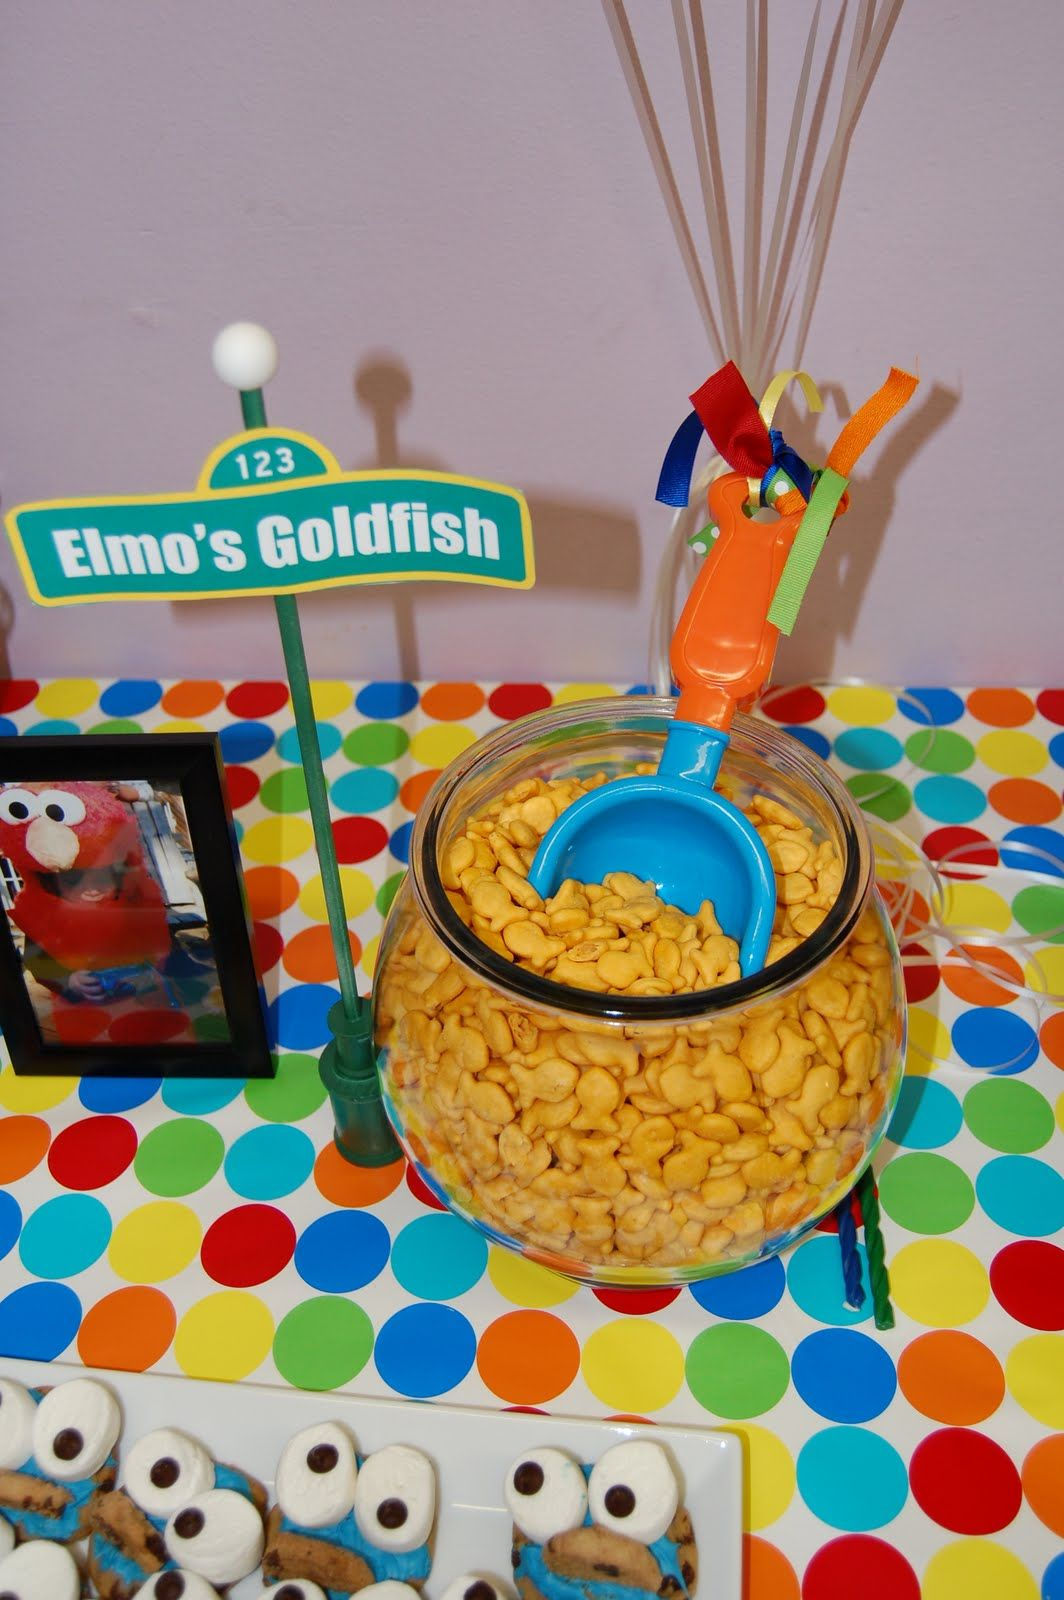 Elmo 39 s goldfish cute idea for a kid 39 s party but with a for 2nd birthday party decoration ideas